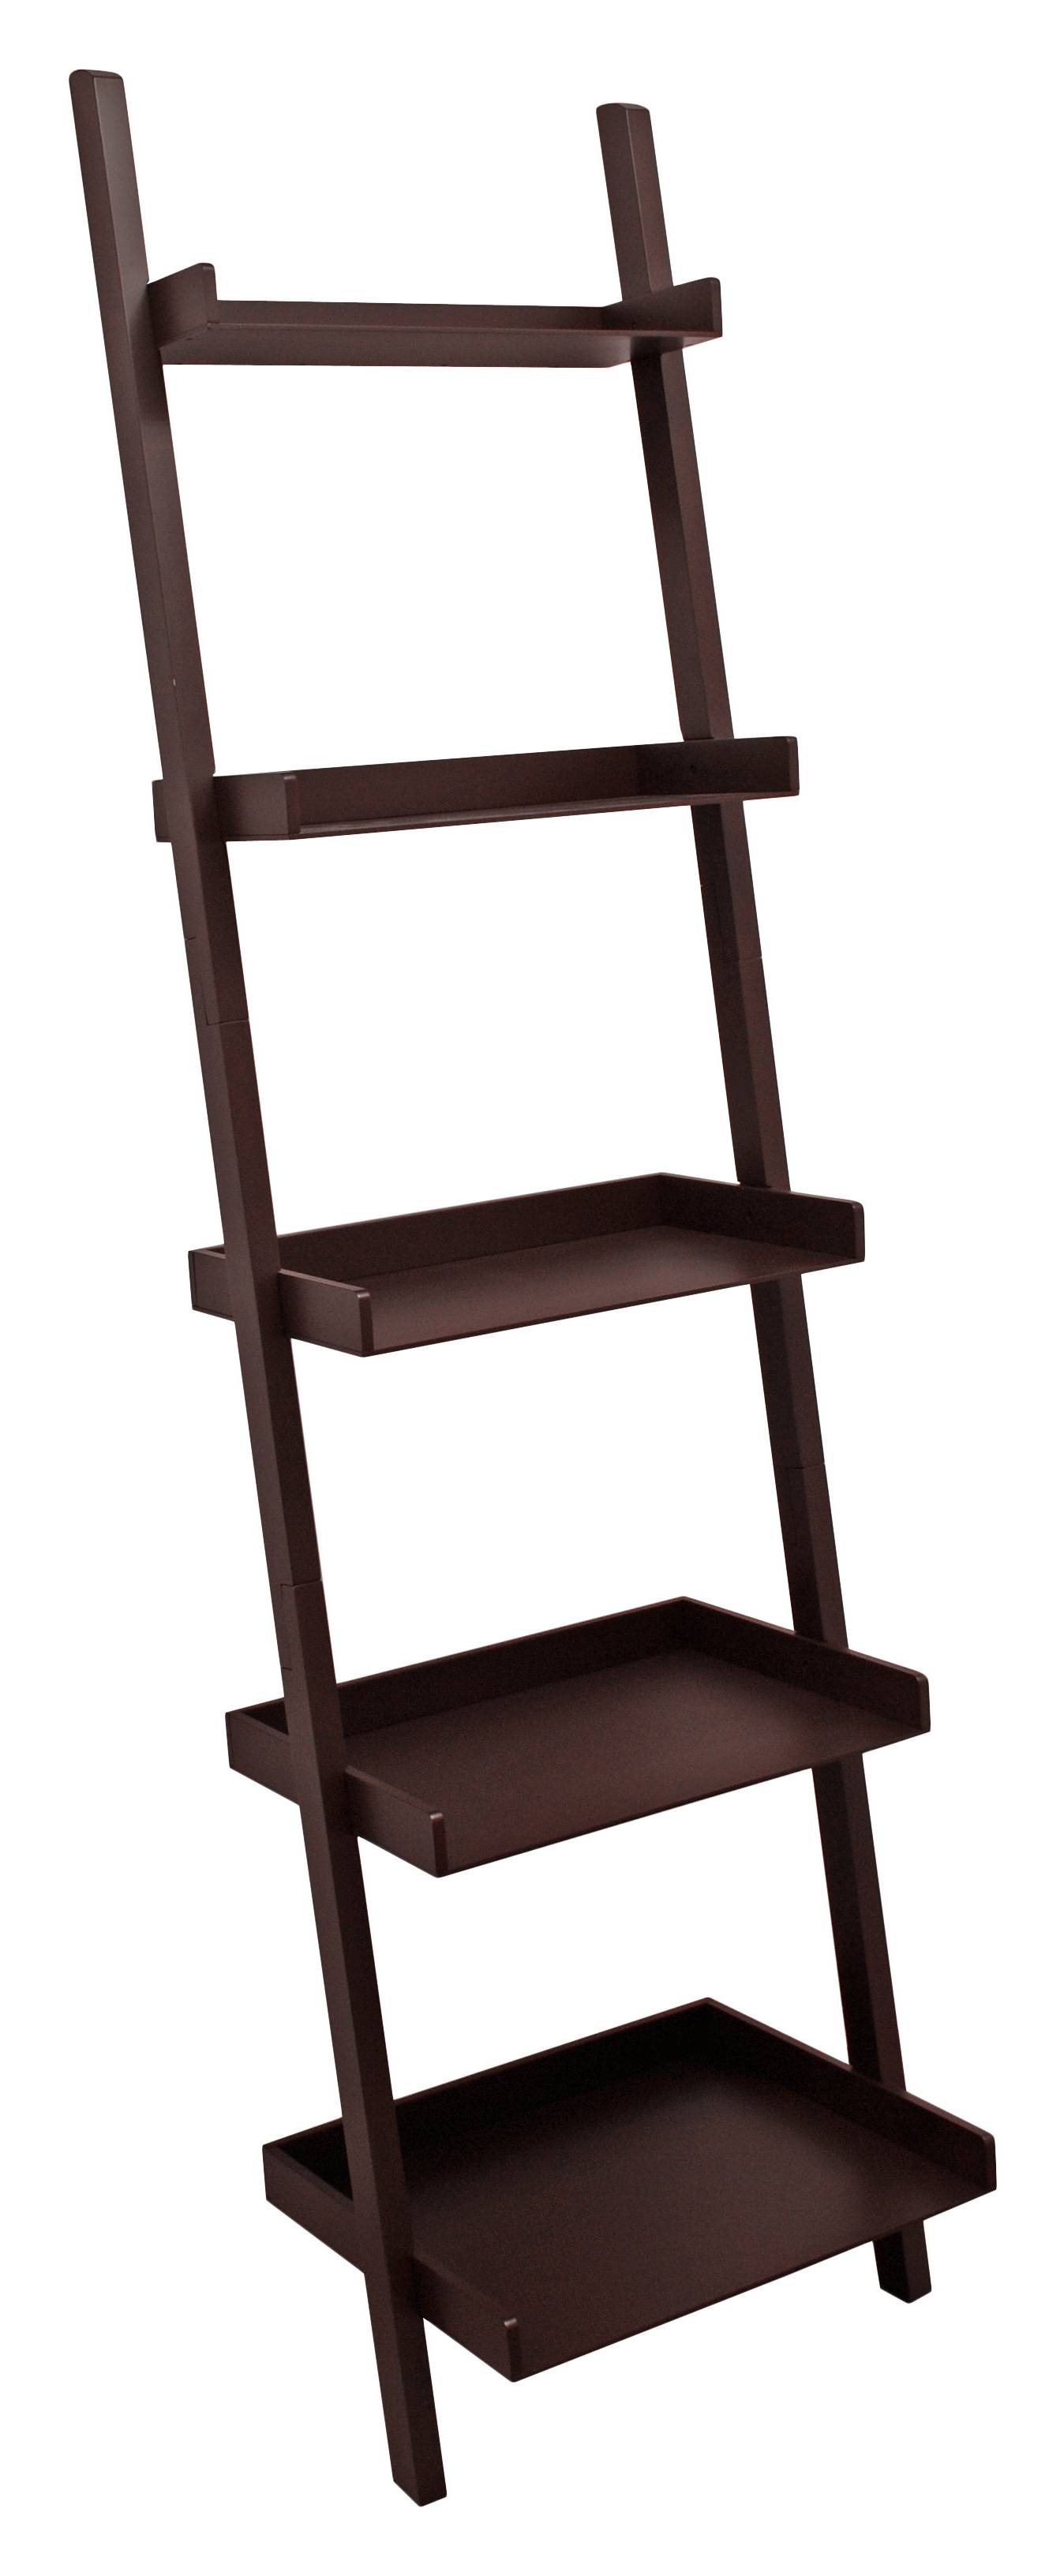 Widely Used Brock Ladder Bookcases Intended For Pfaff 5 Tier Ladder Bookcase (View 11 of 20)